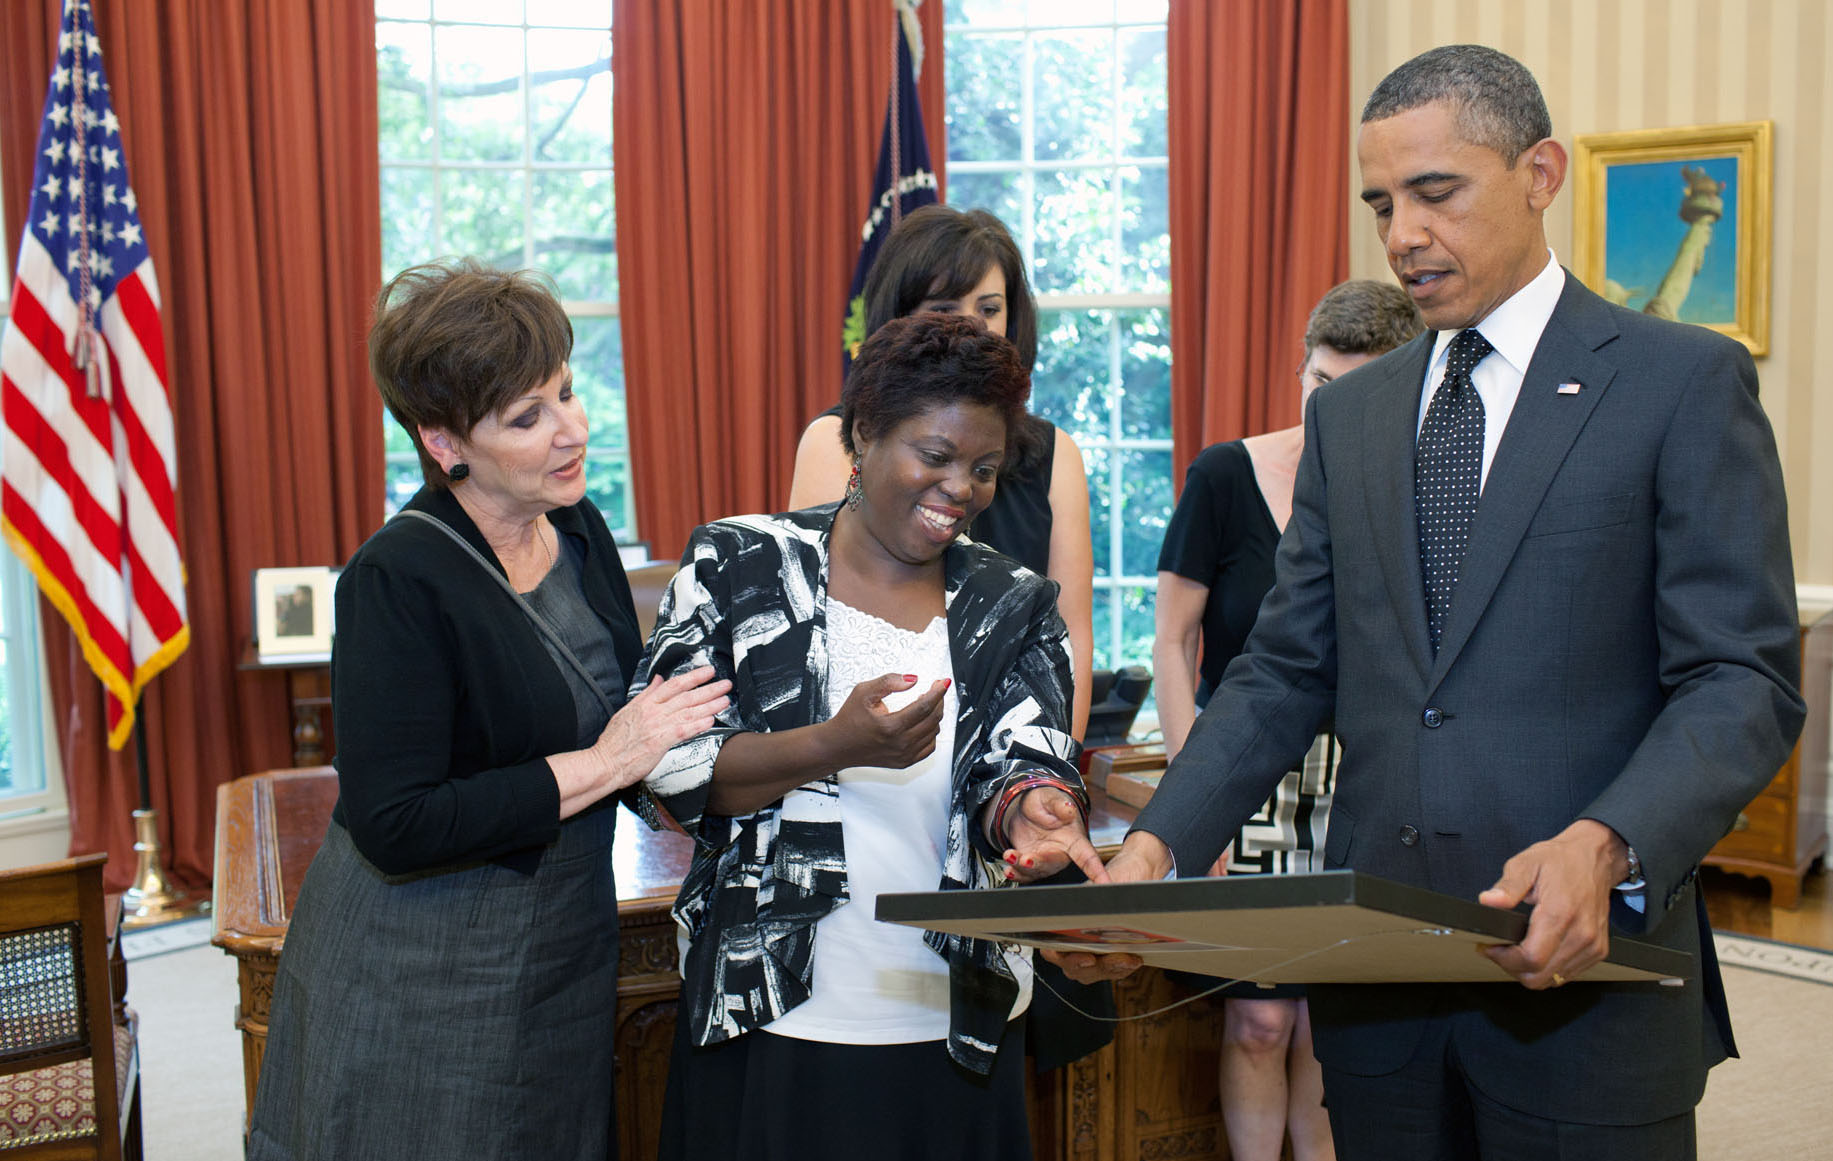 President Barack Obama looks at a painting presented to him by artist Lois Curtis, center, during their meeting in the Oval Office, June 20, 2011. Joining them are, from left, Janet Hill and Jessica Long, from the Georgia Department of Labor, and Lee Sanders, of Briggs and Associates. (Official White House Photo by Pete Souza)